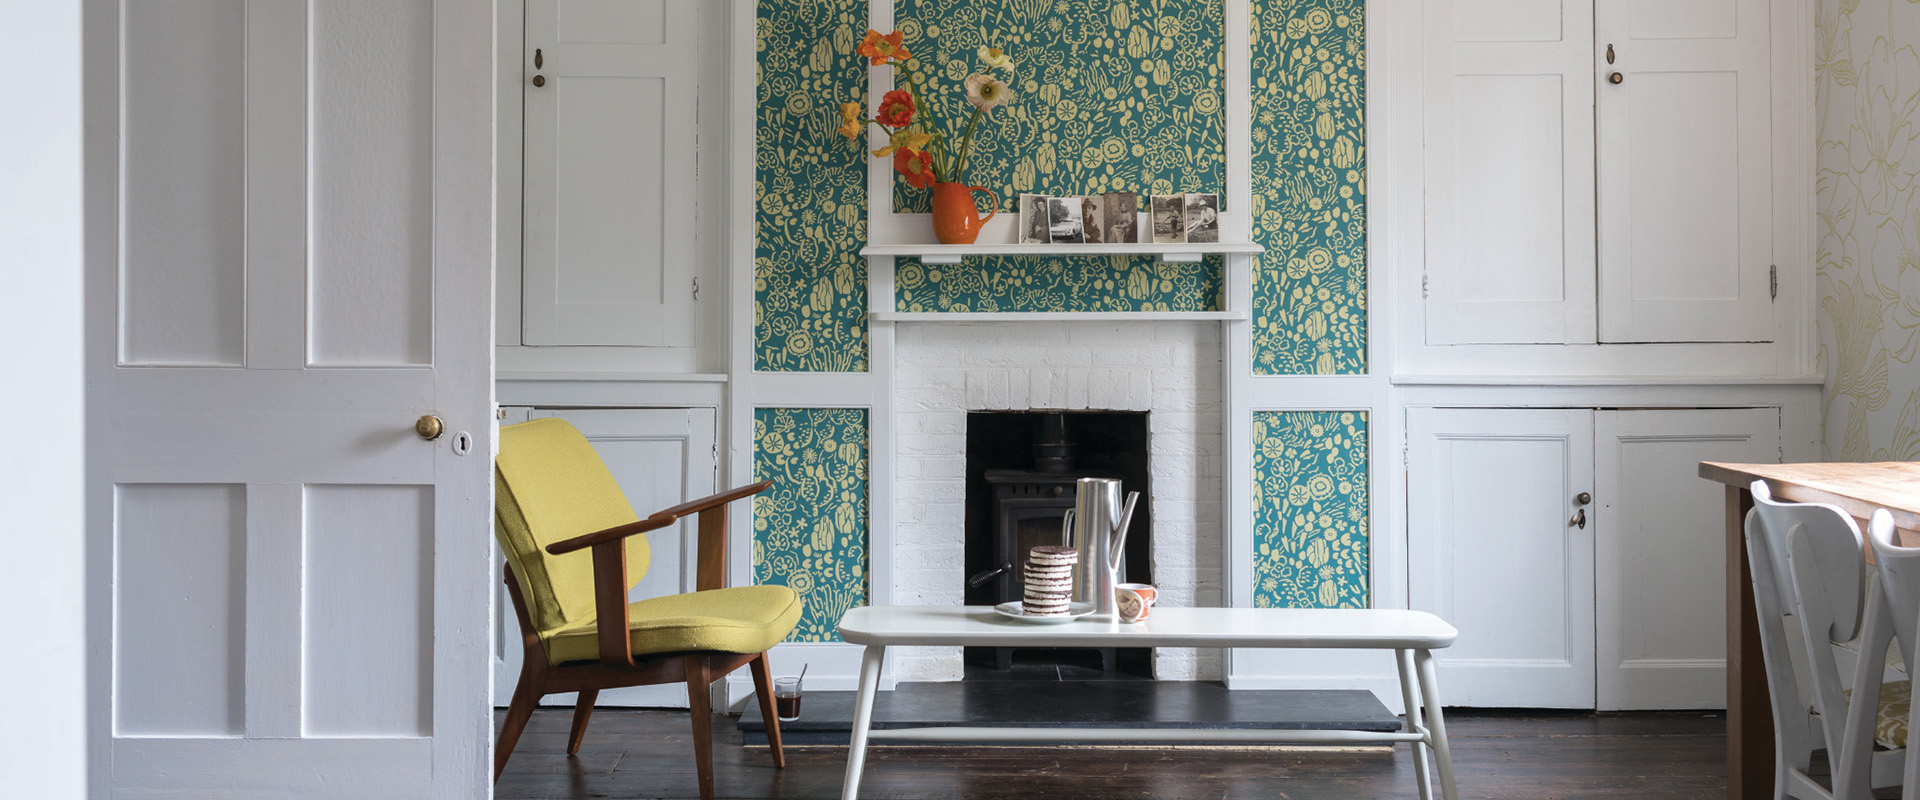 Farrow And Ball Décoration Farrow And Ball Wallpaper Campbellwicks Interiors